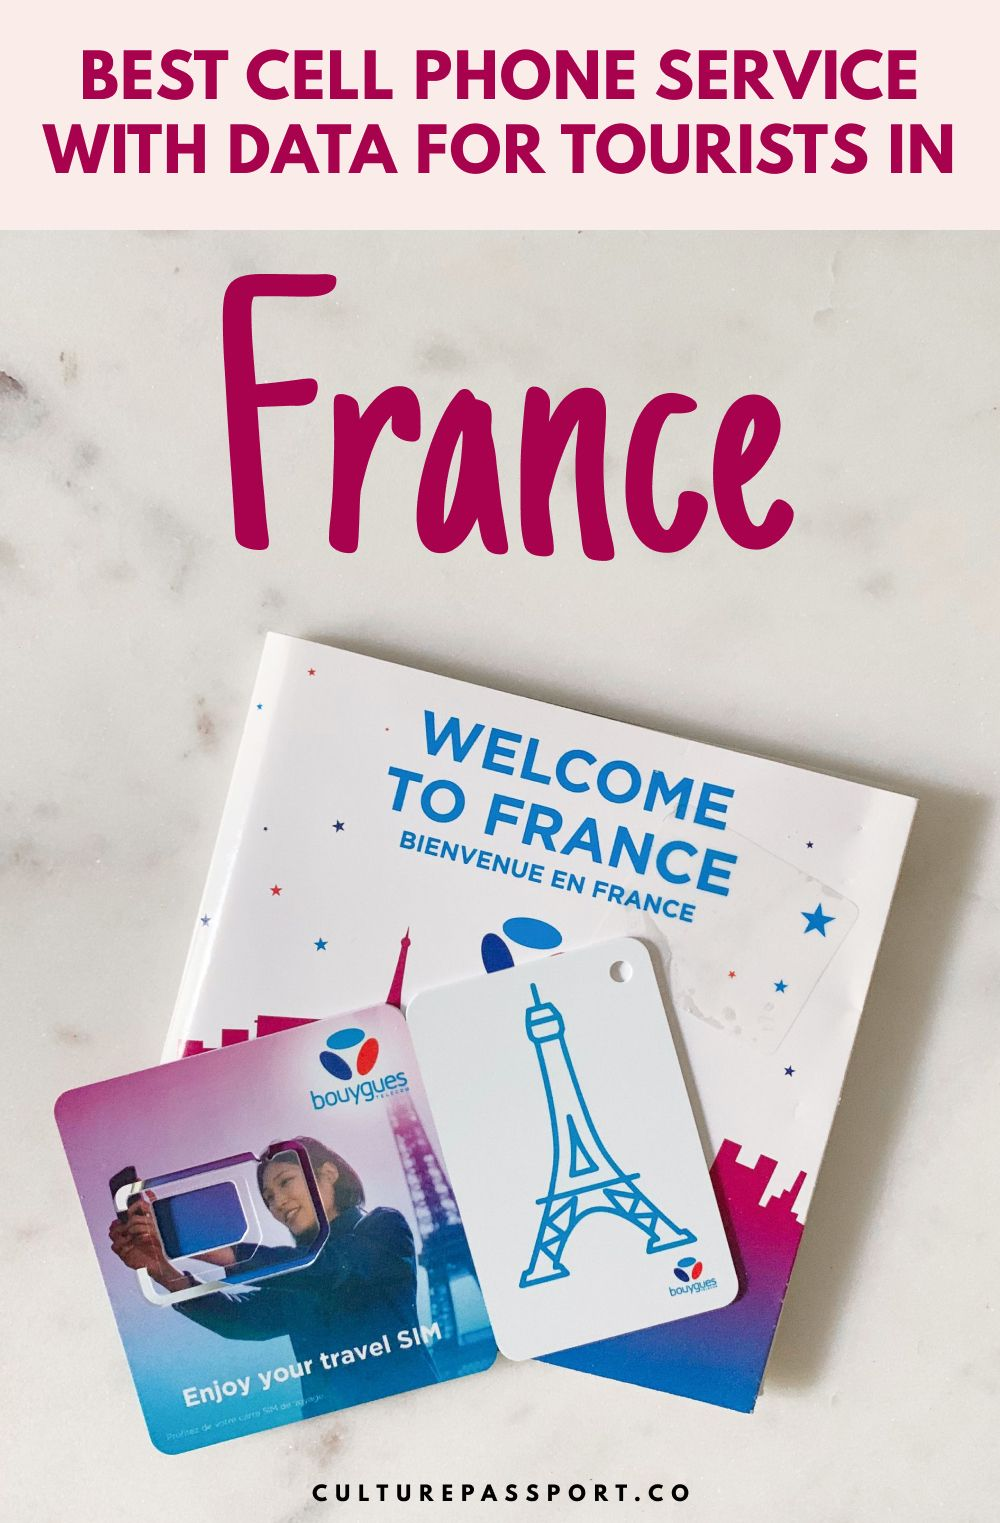 The Best Prepaid Cell Phone Plans & Data for Tourists in France